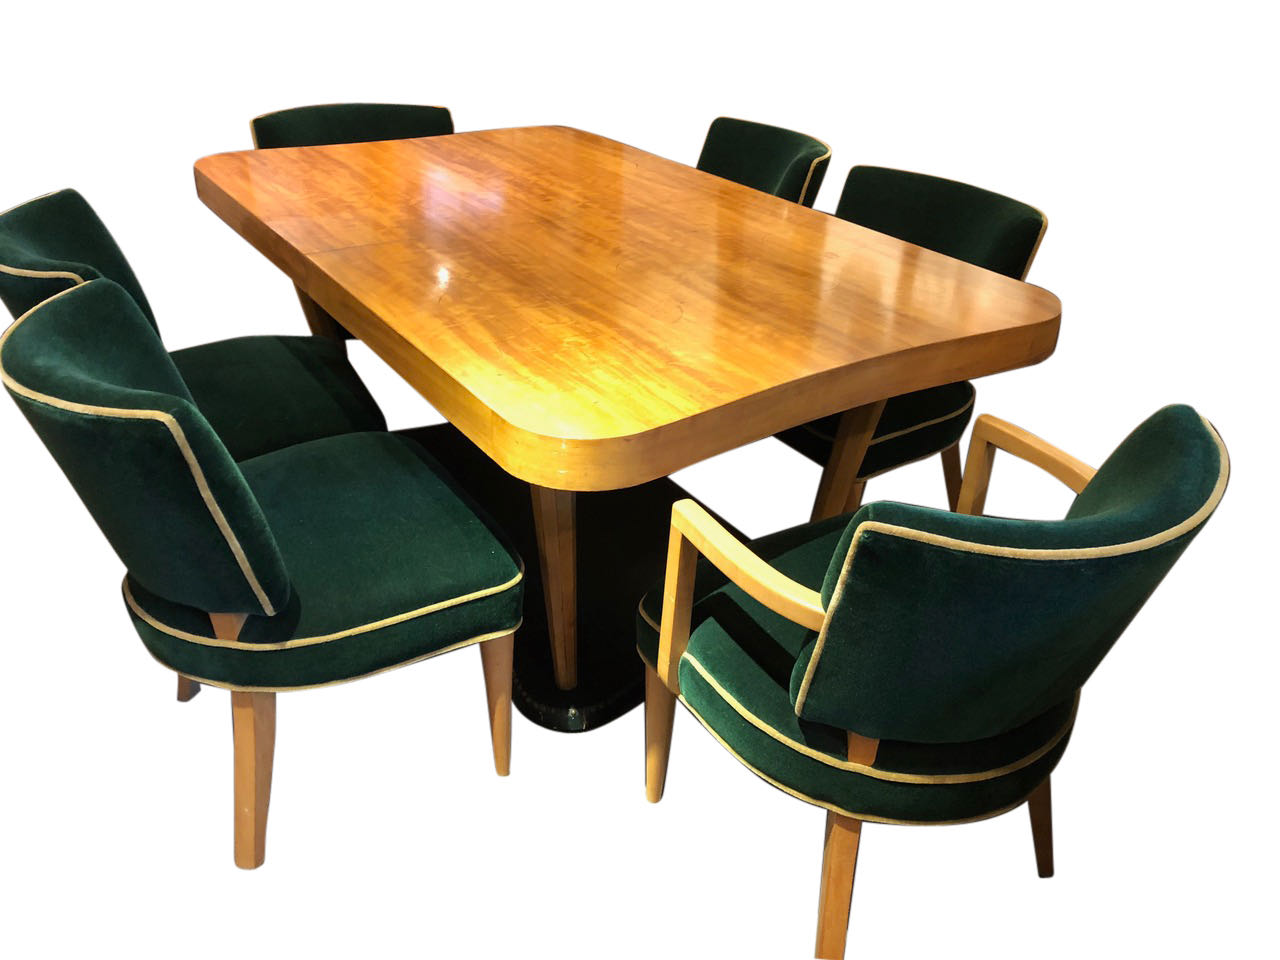 Art Deco Dining Chairs Art Deco Dining Room Furniture For Sale Tables And Chairs Art